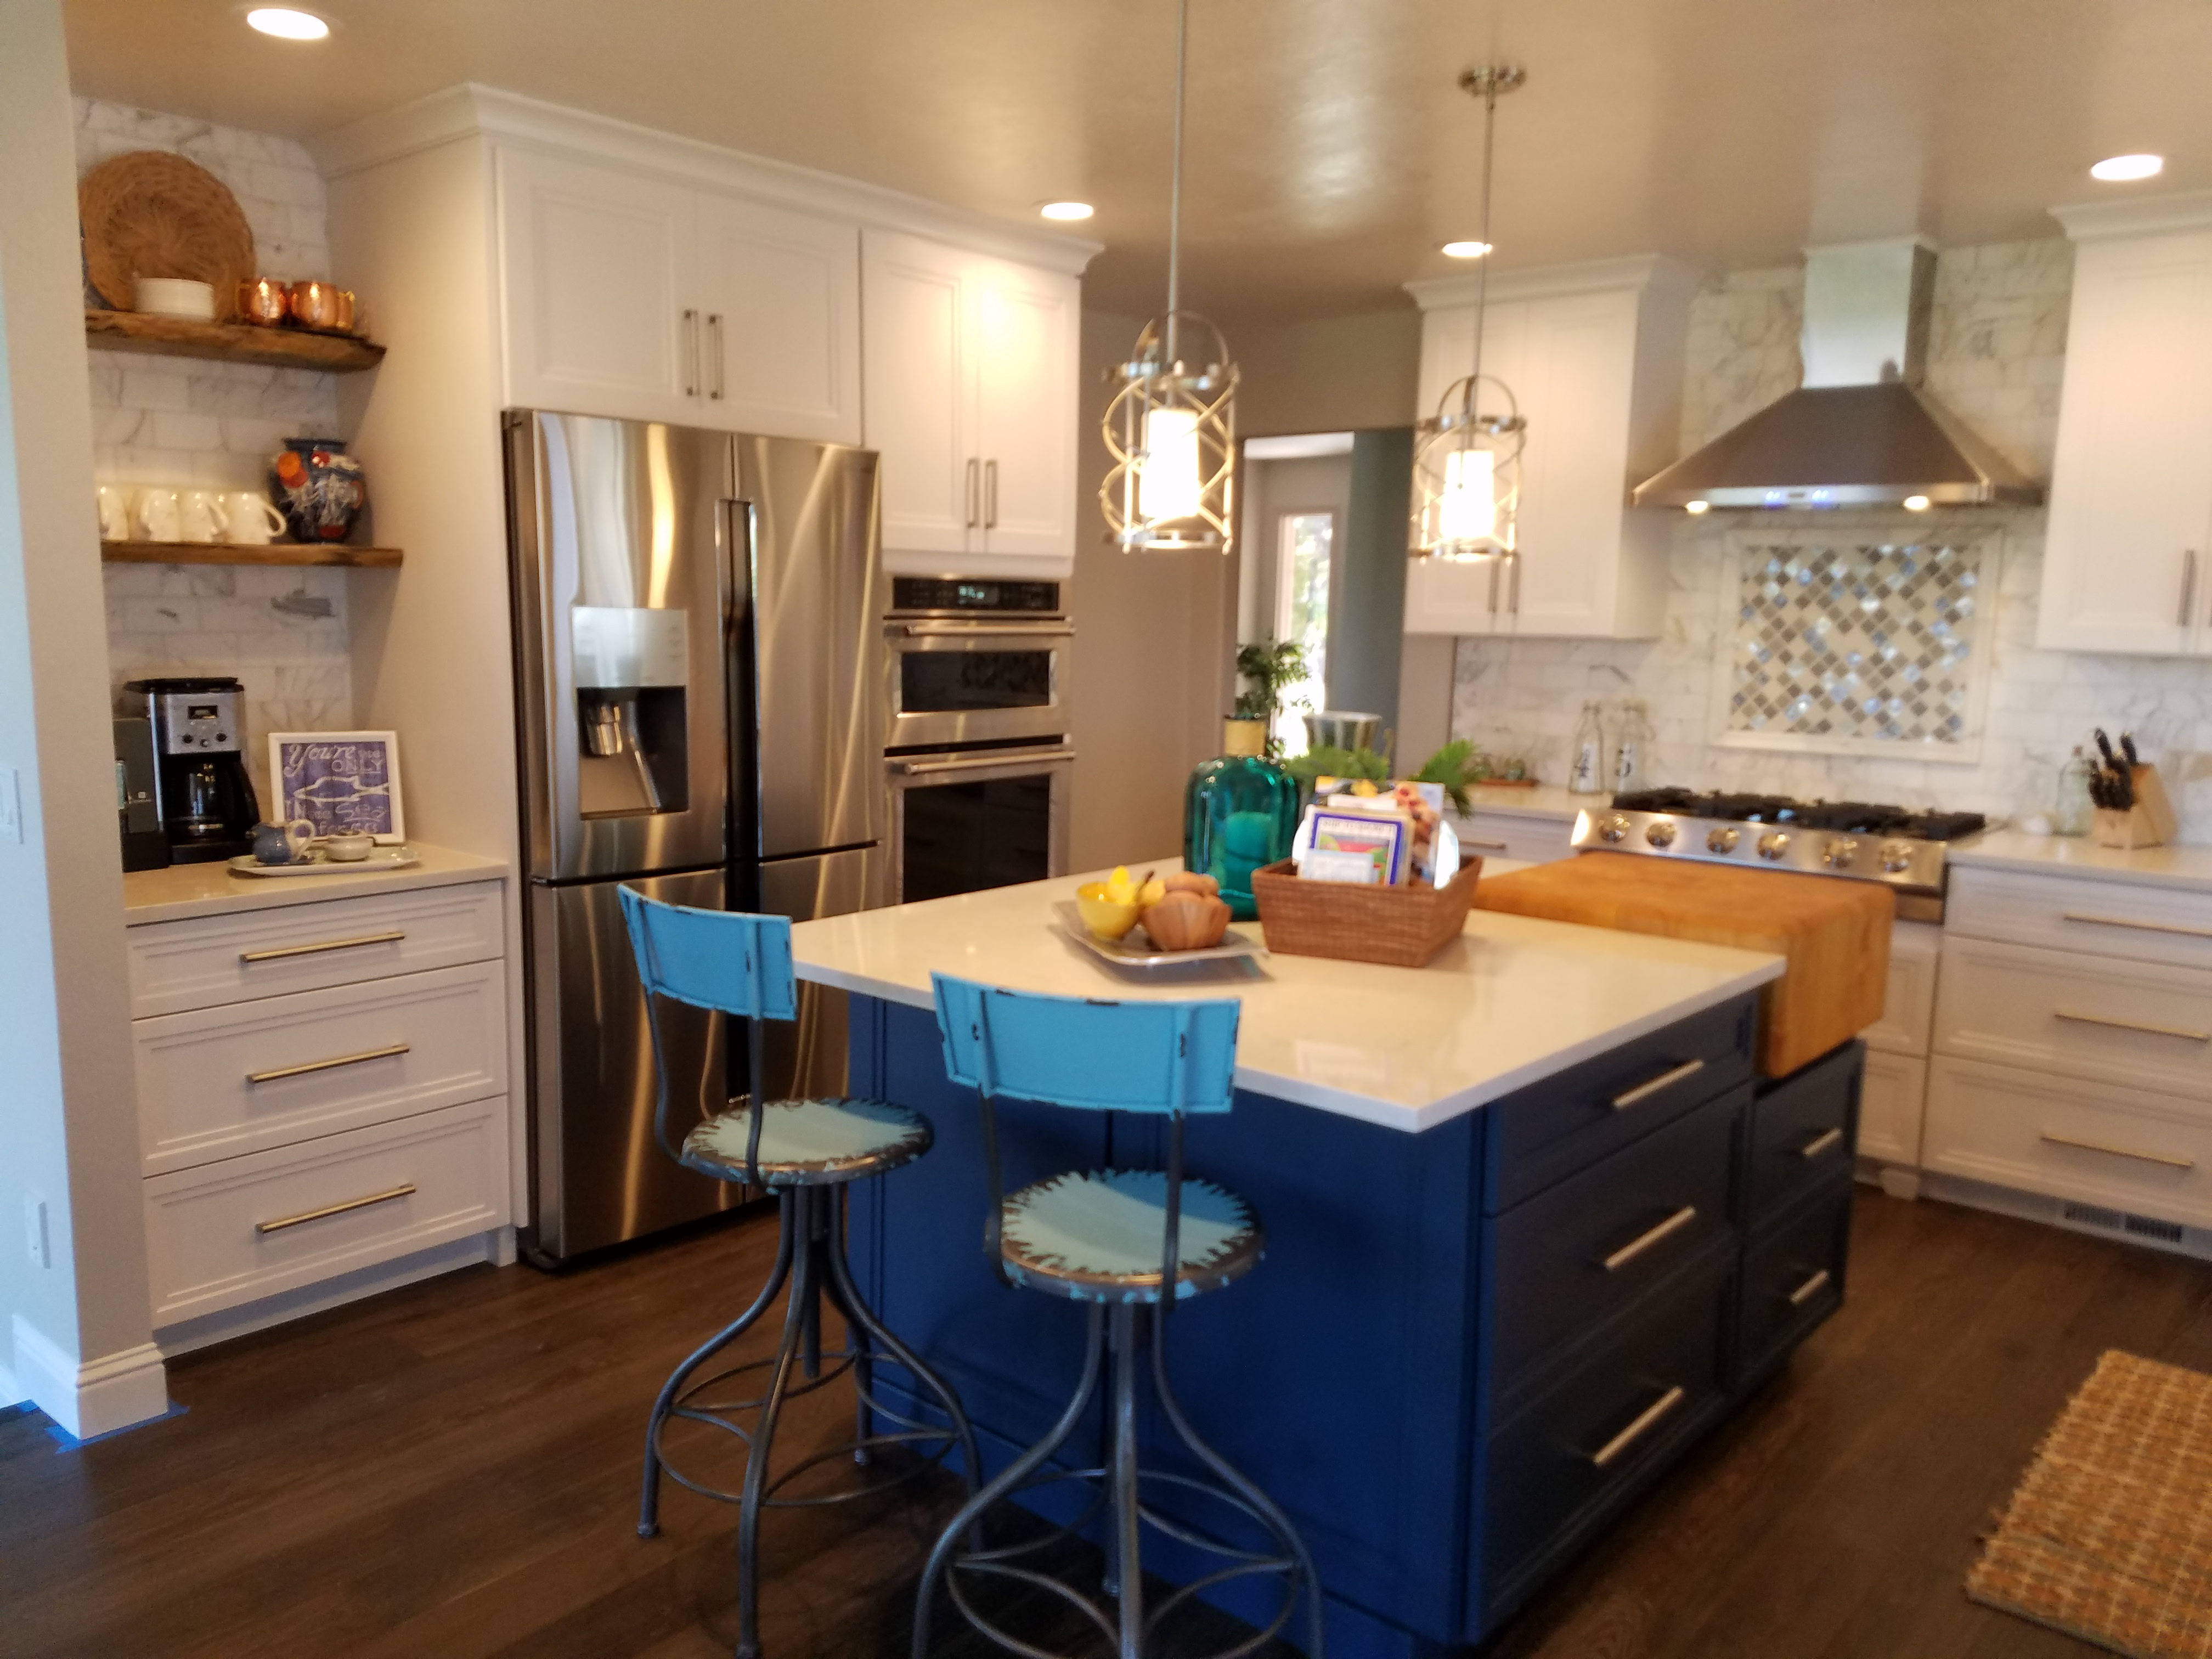 White cabinets and counter tops, stainless fridge and oven